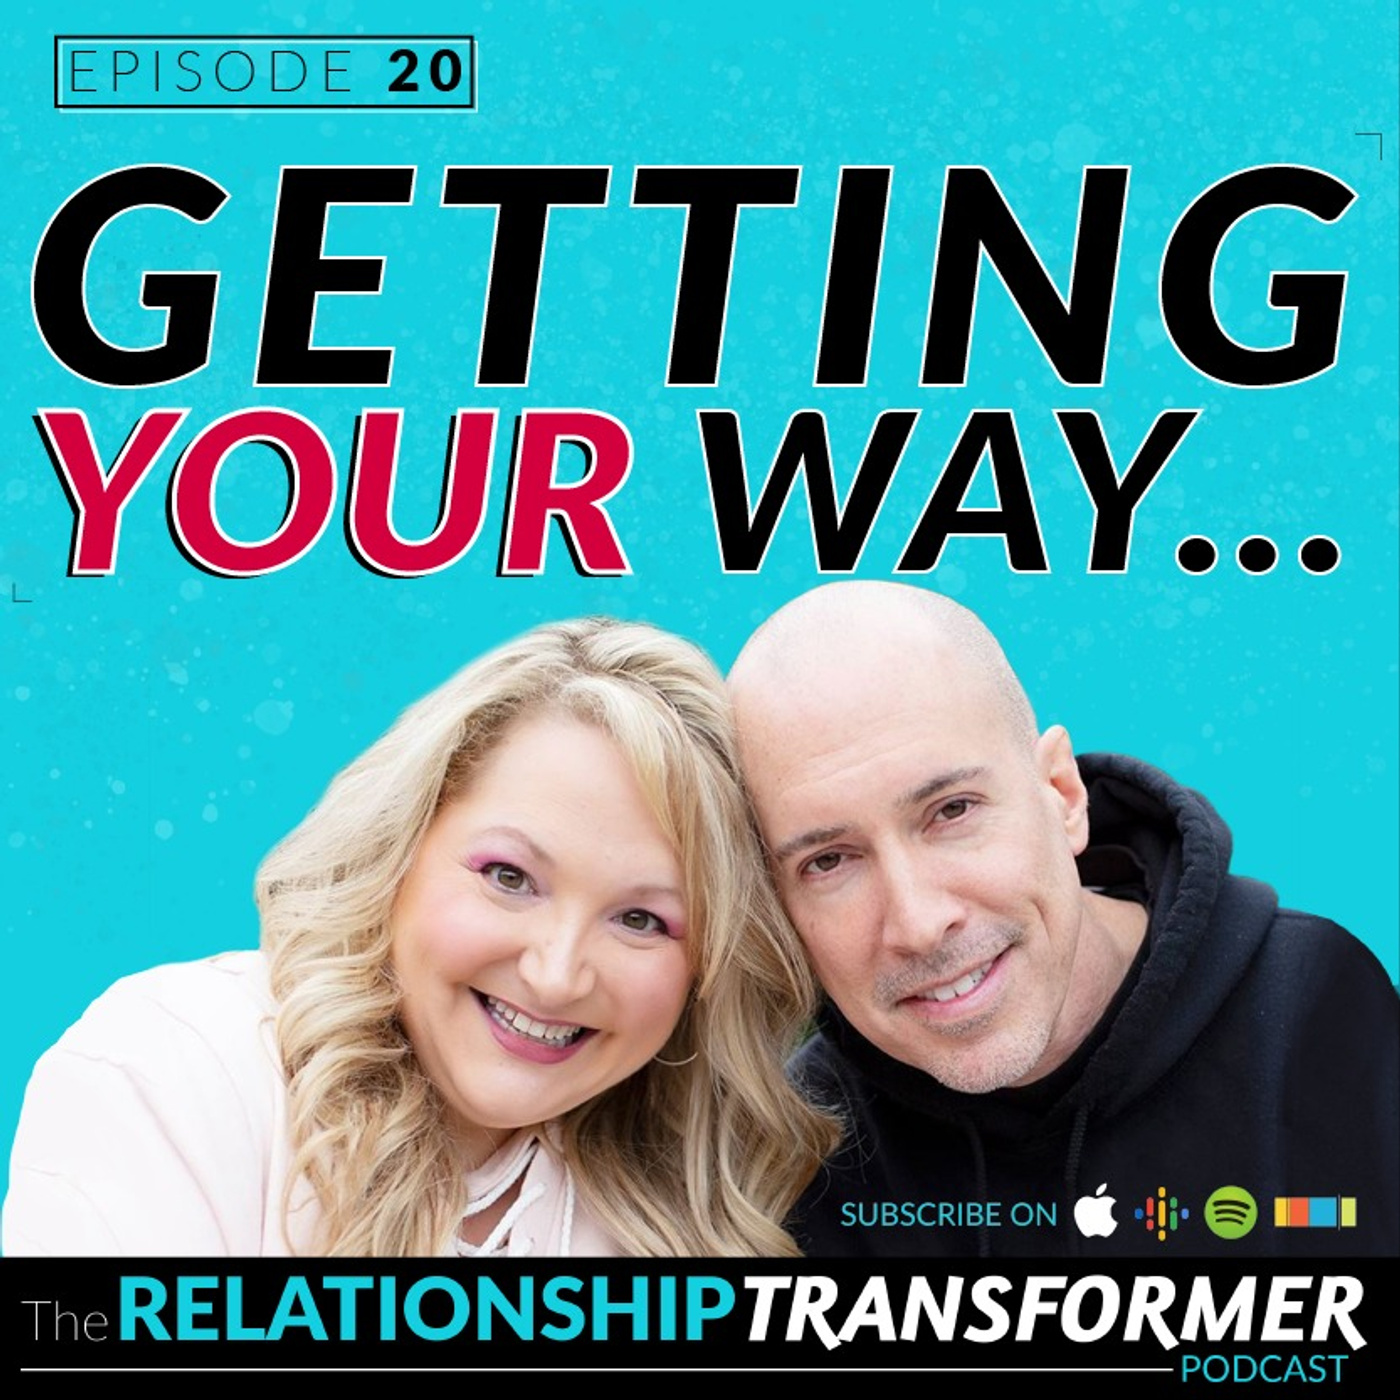 Relationship Transformers - 20: Getting Your Way